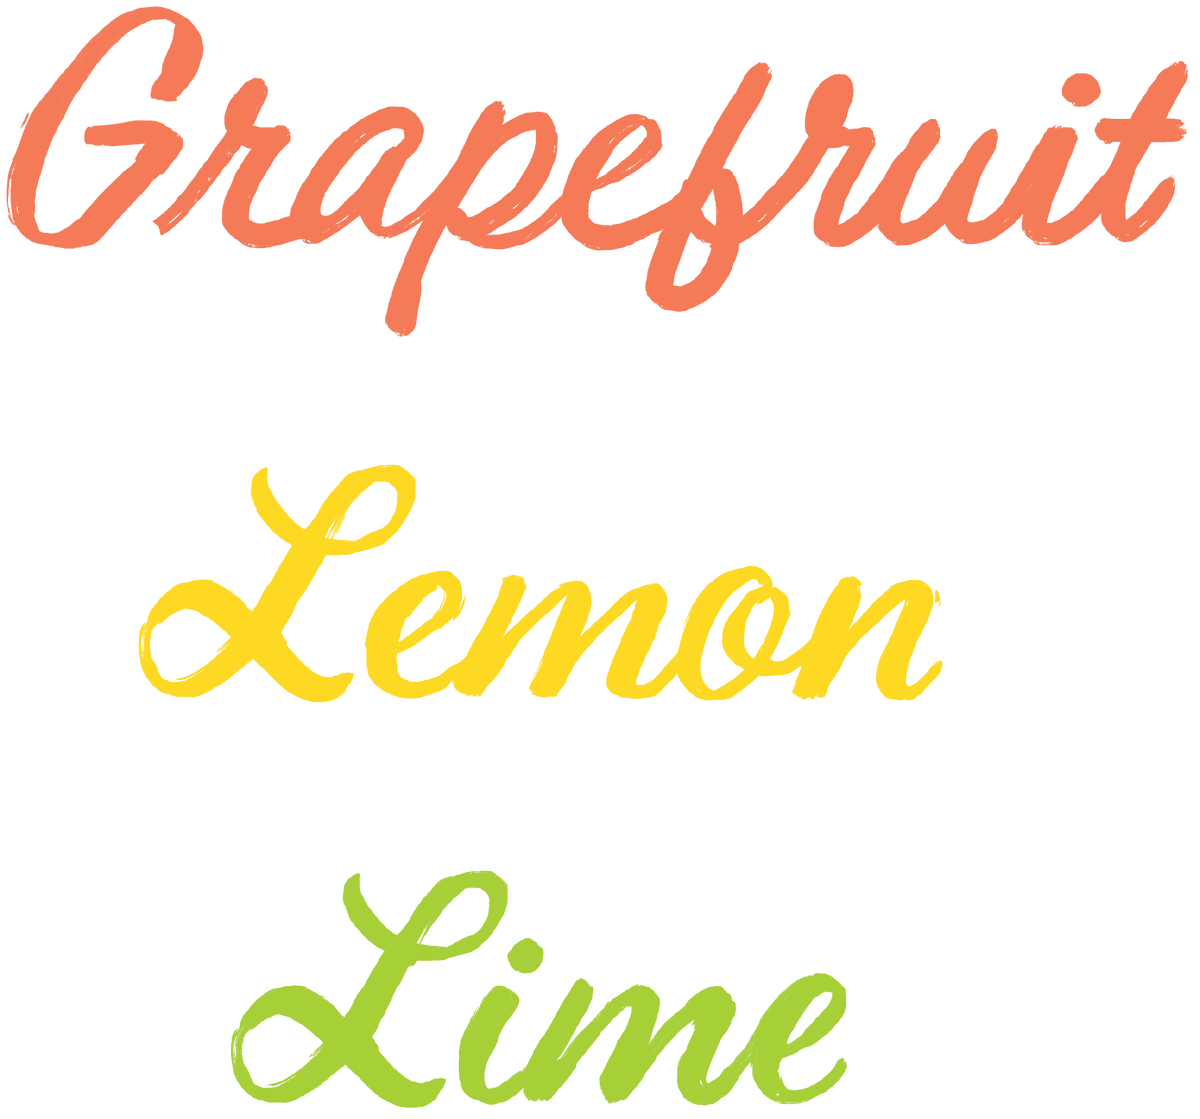 Grapefruit, Lemon, Lime